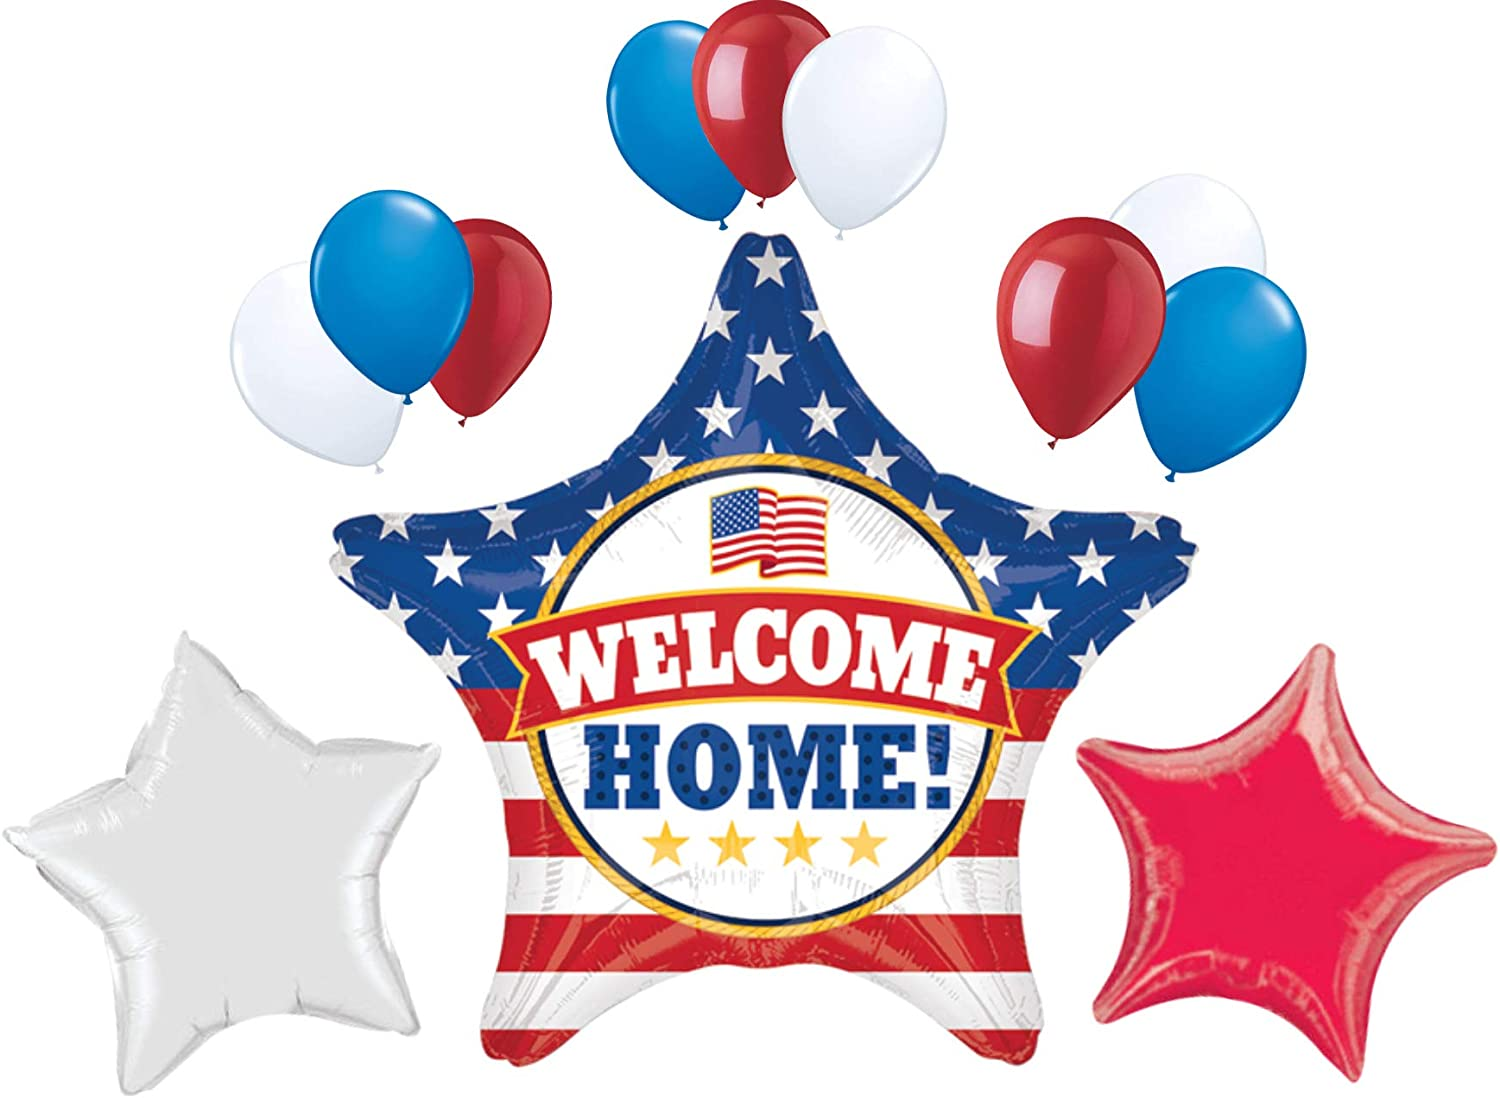 Welcome Home 19 Inch Patriotic USA Military Armed Forces Star Balloon Party Decoration Set. Red White and Blue Balloons. By PartyBox!